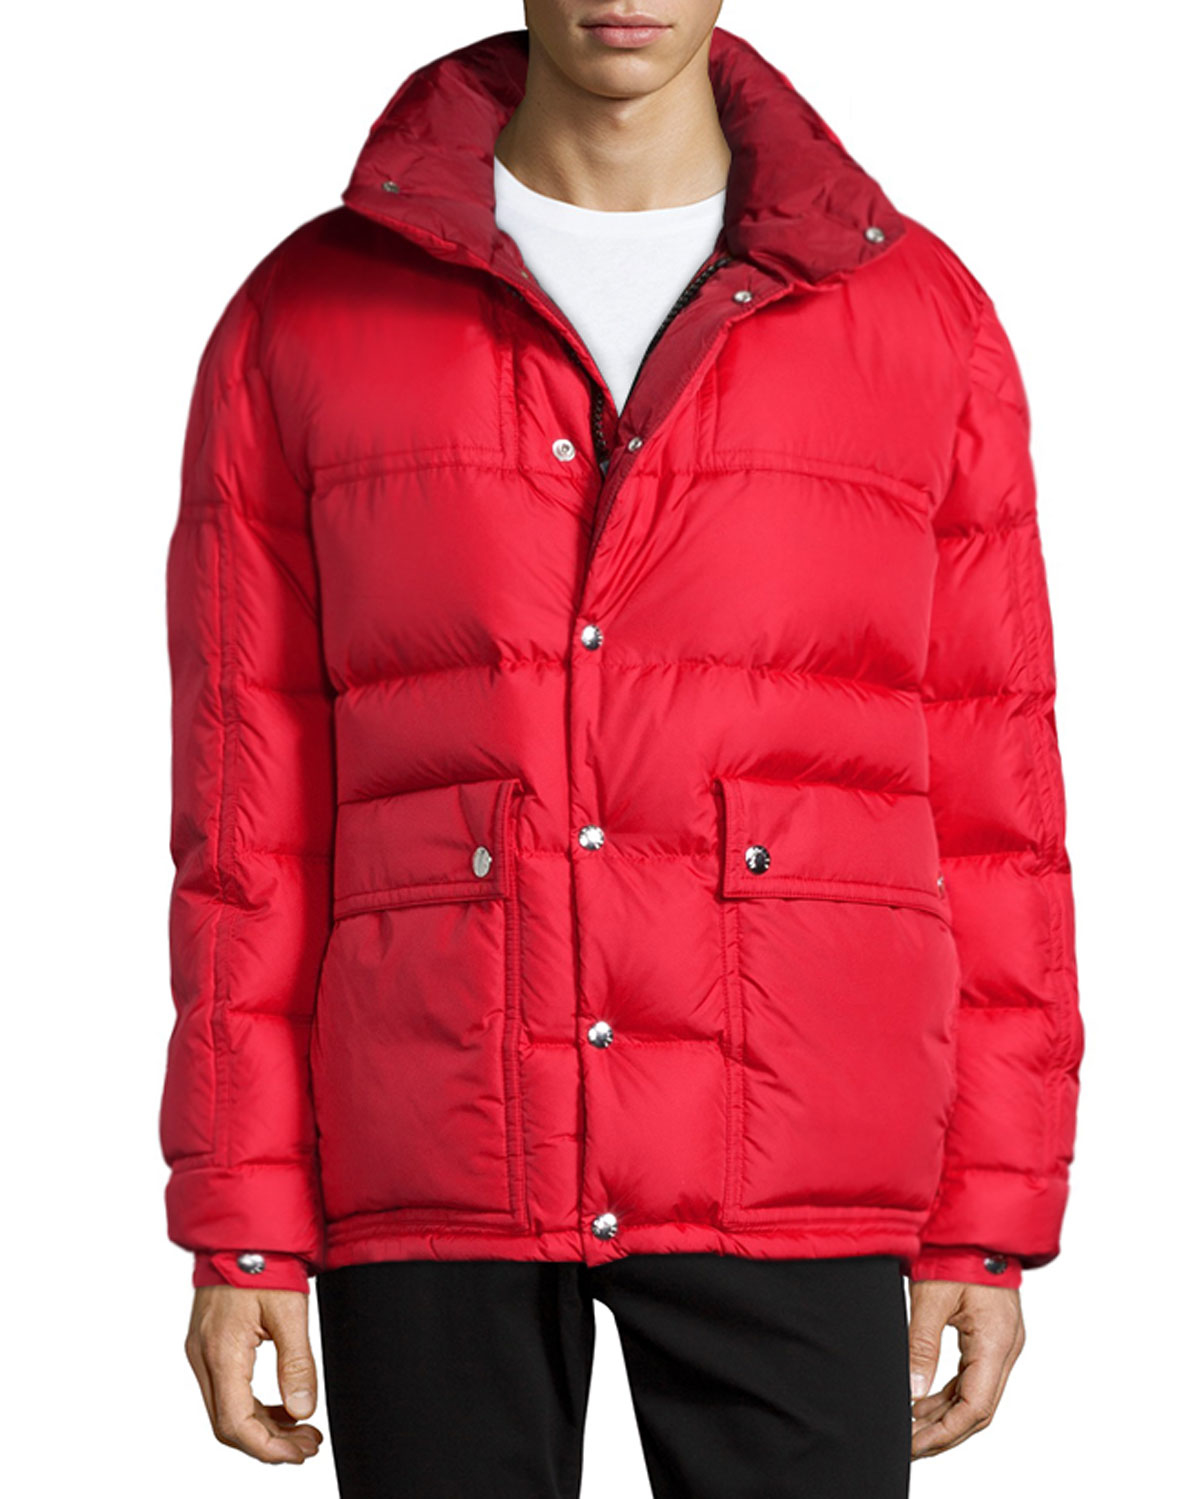 b95760e1b51c low cost moncler puffer jacket red hood 84ed6 4c708